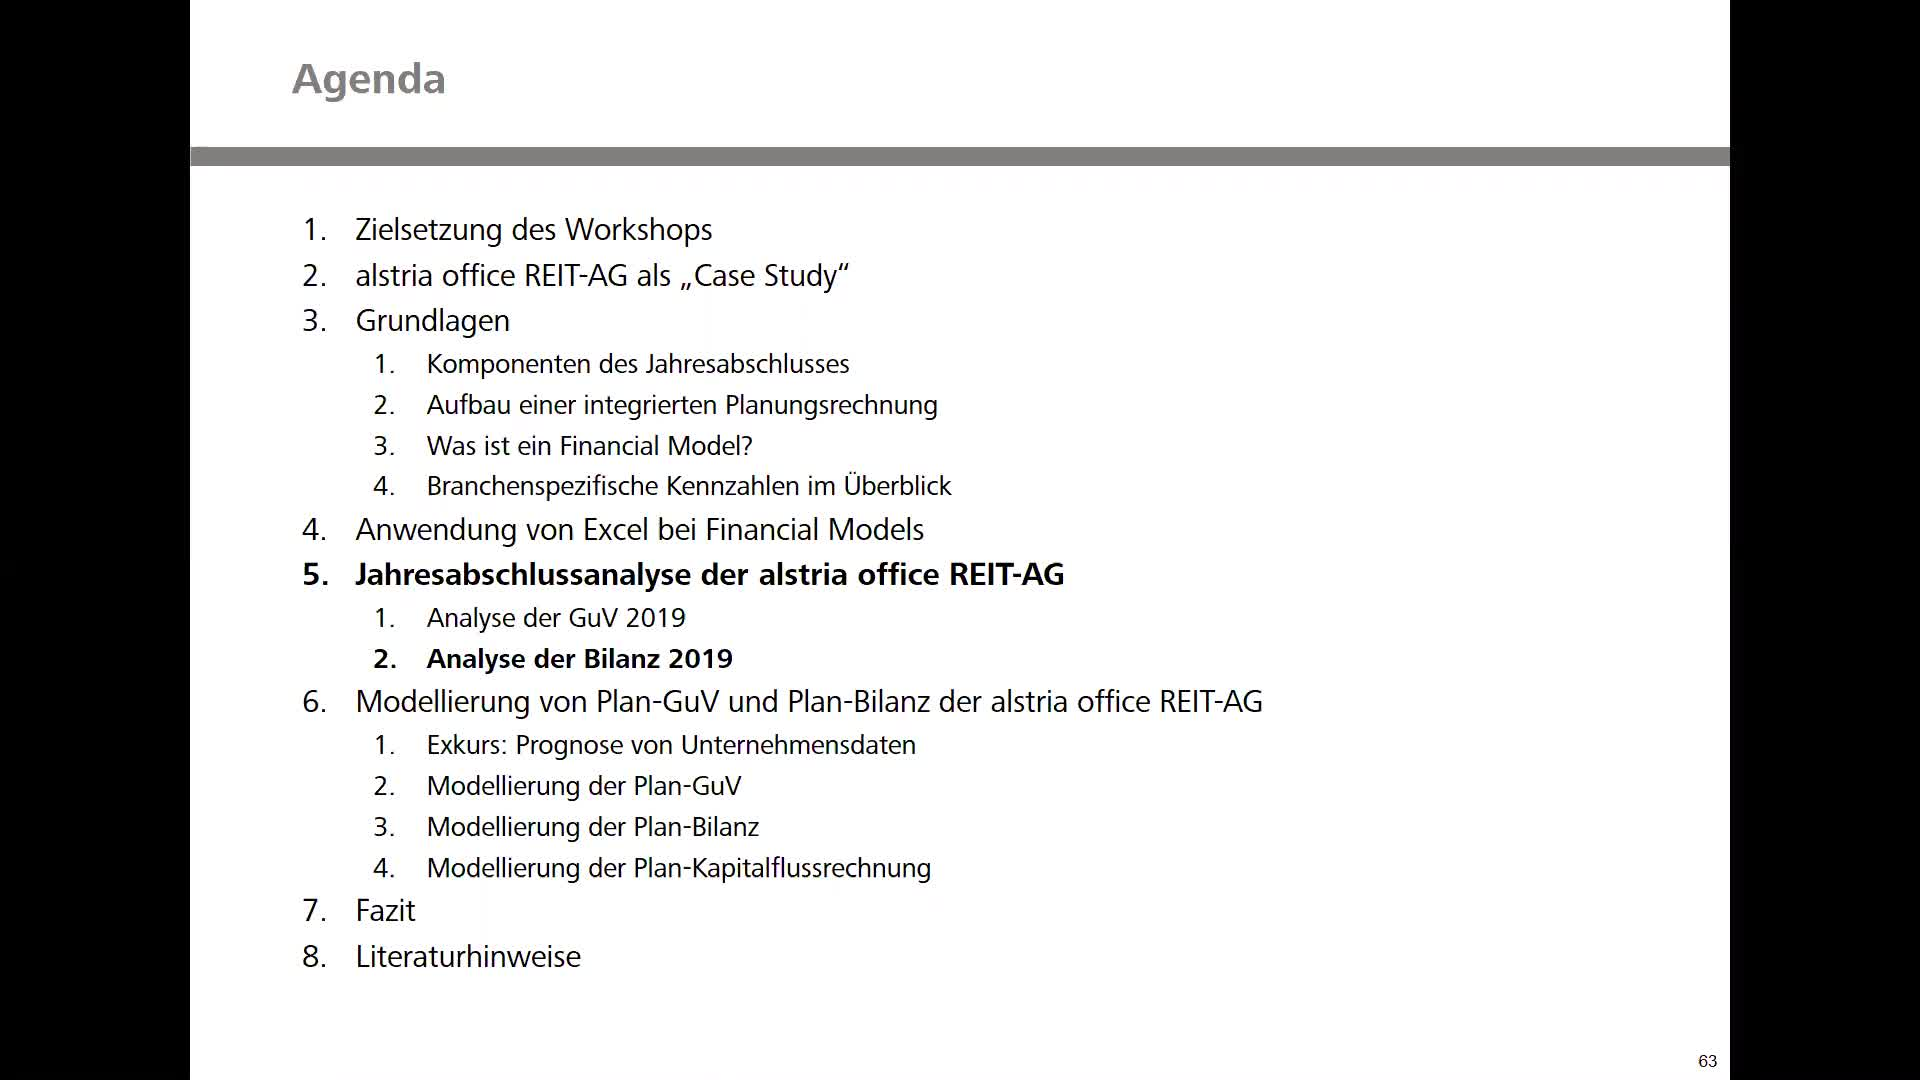 Real Estate Financial Modeling - Teil 3: Analyse der Bilanz